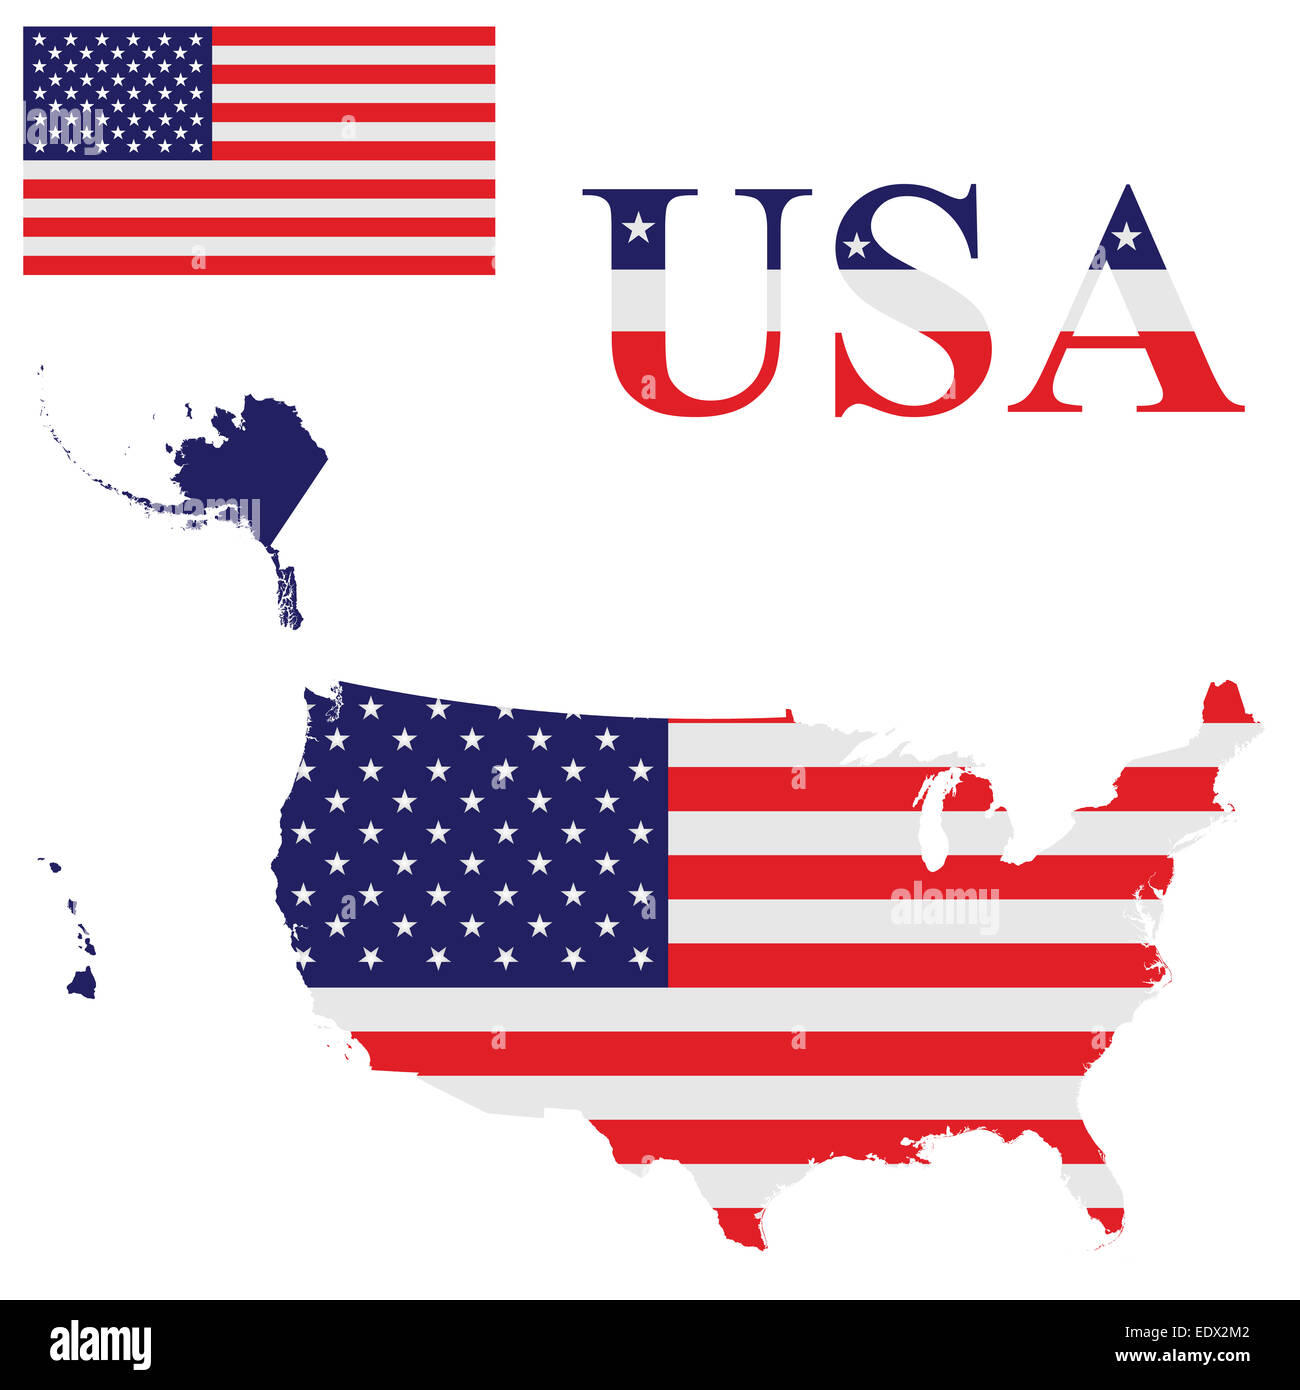 United States Map Alaska And Hawaii Stock Photos & United States Map ...